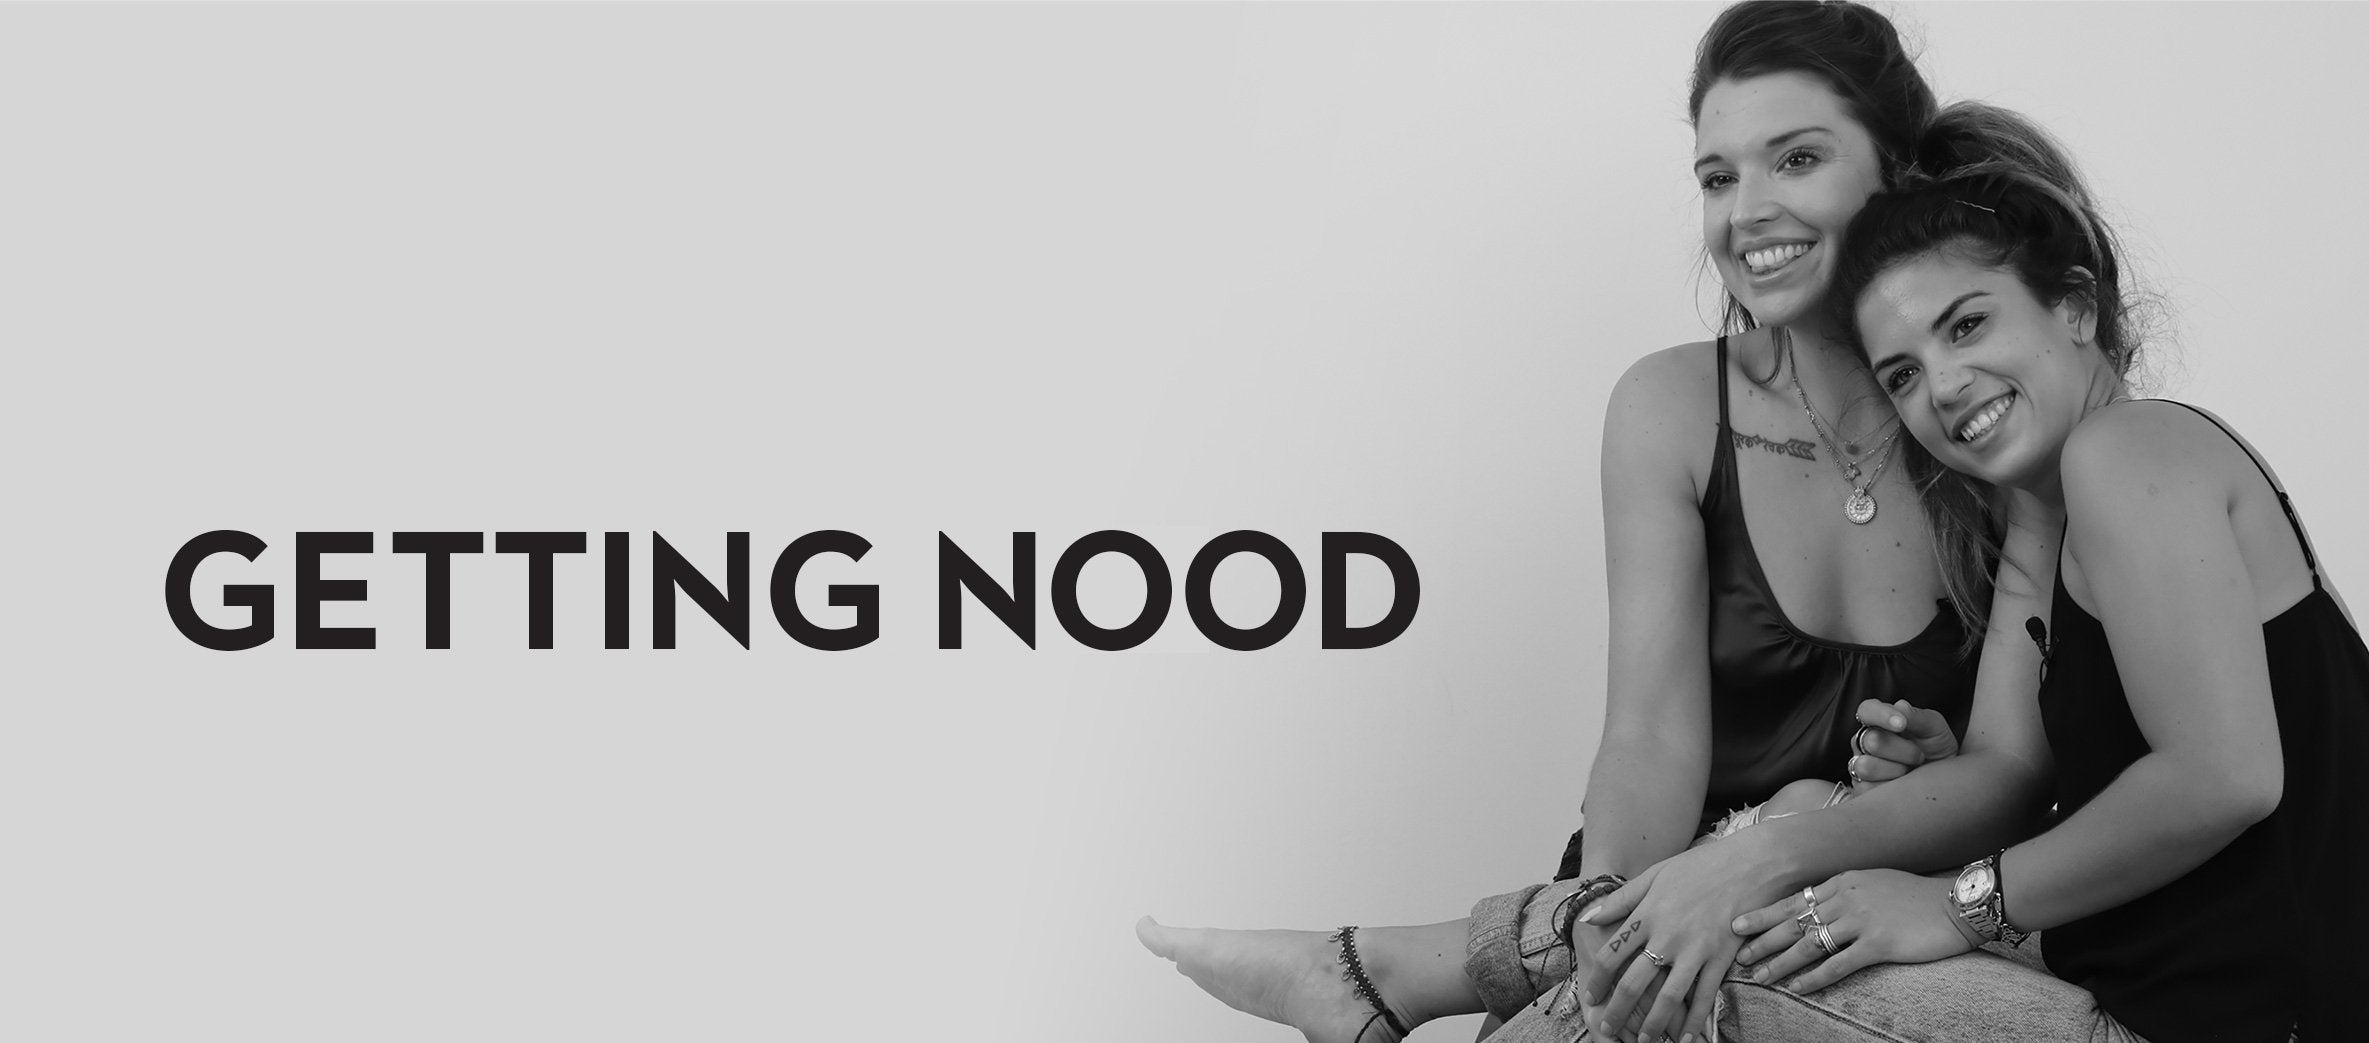 Getting NOOD - Listening to your body